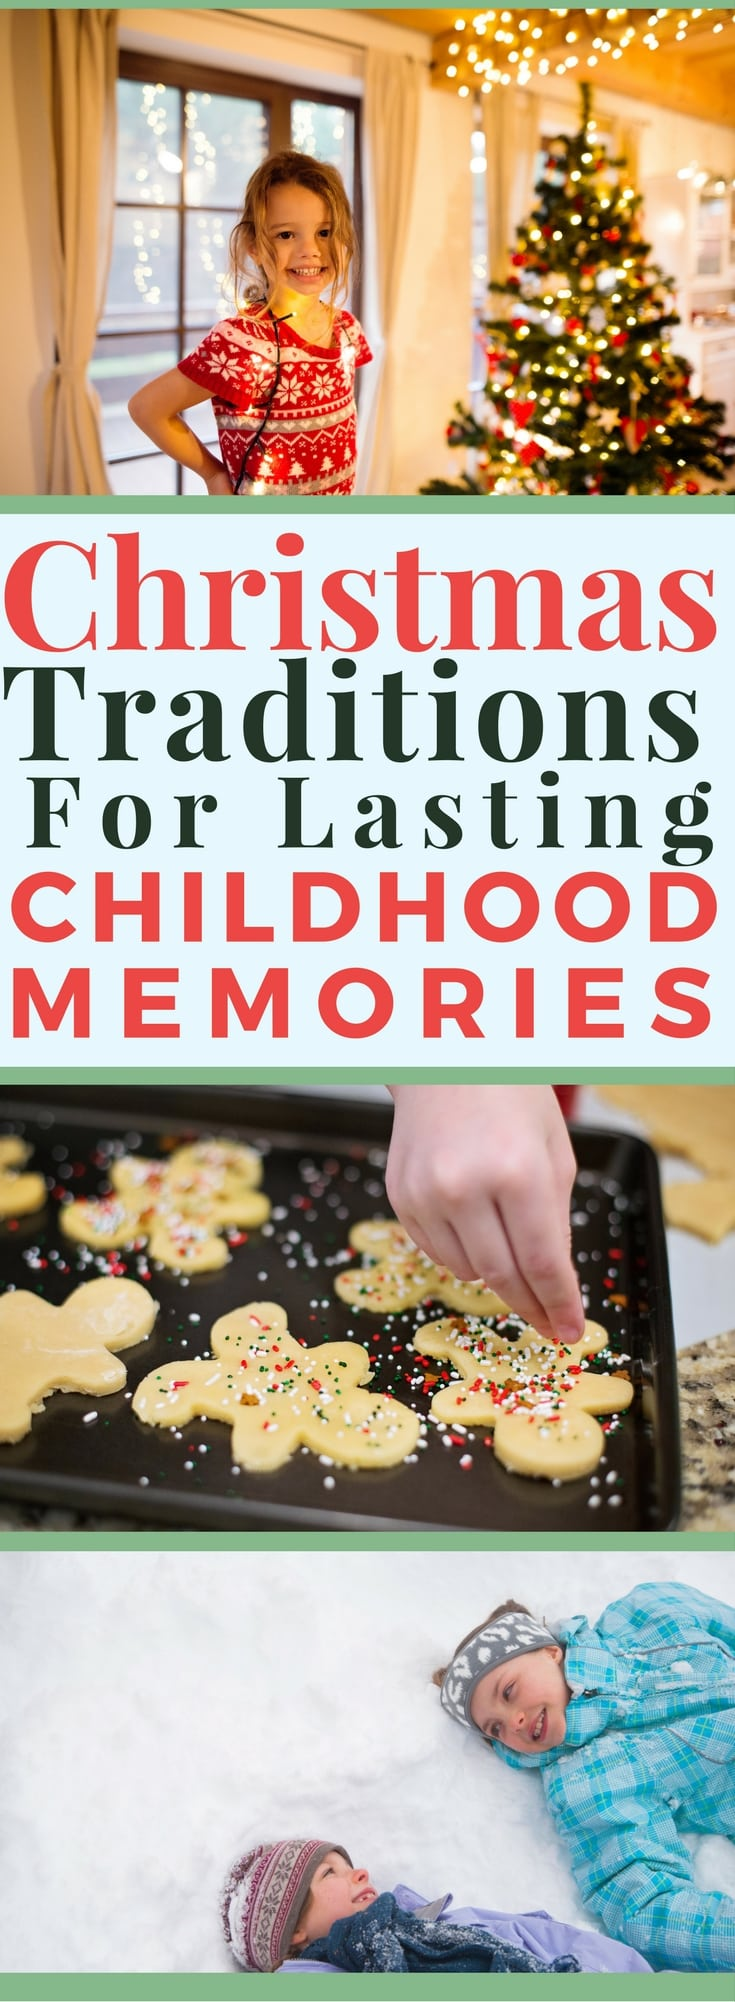 Creating Christmas traditions is one of the best ways to create lasting childhood memories for your kids. The Christmas lights, music, family togetherness and general spirit often brings much more joy than any gifts exchanged. Decorating mini-tree.